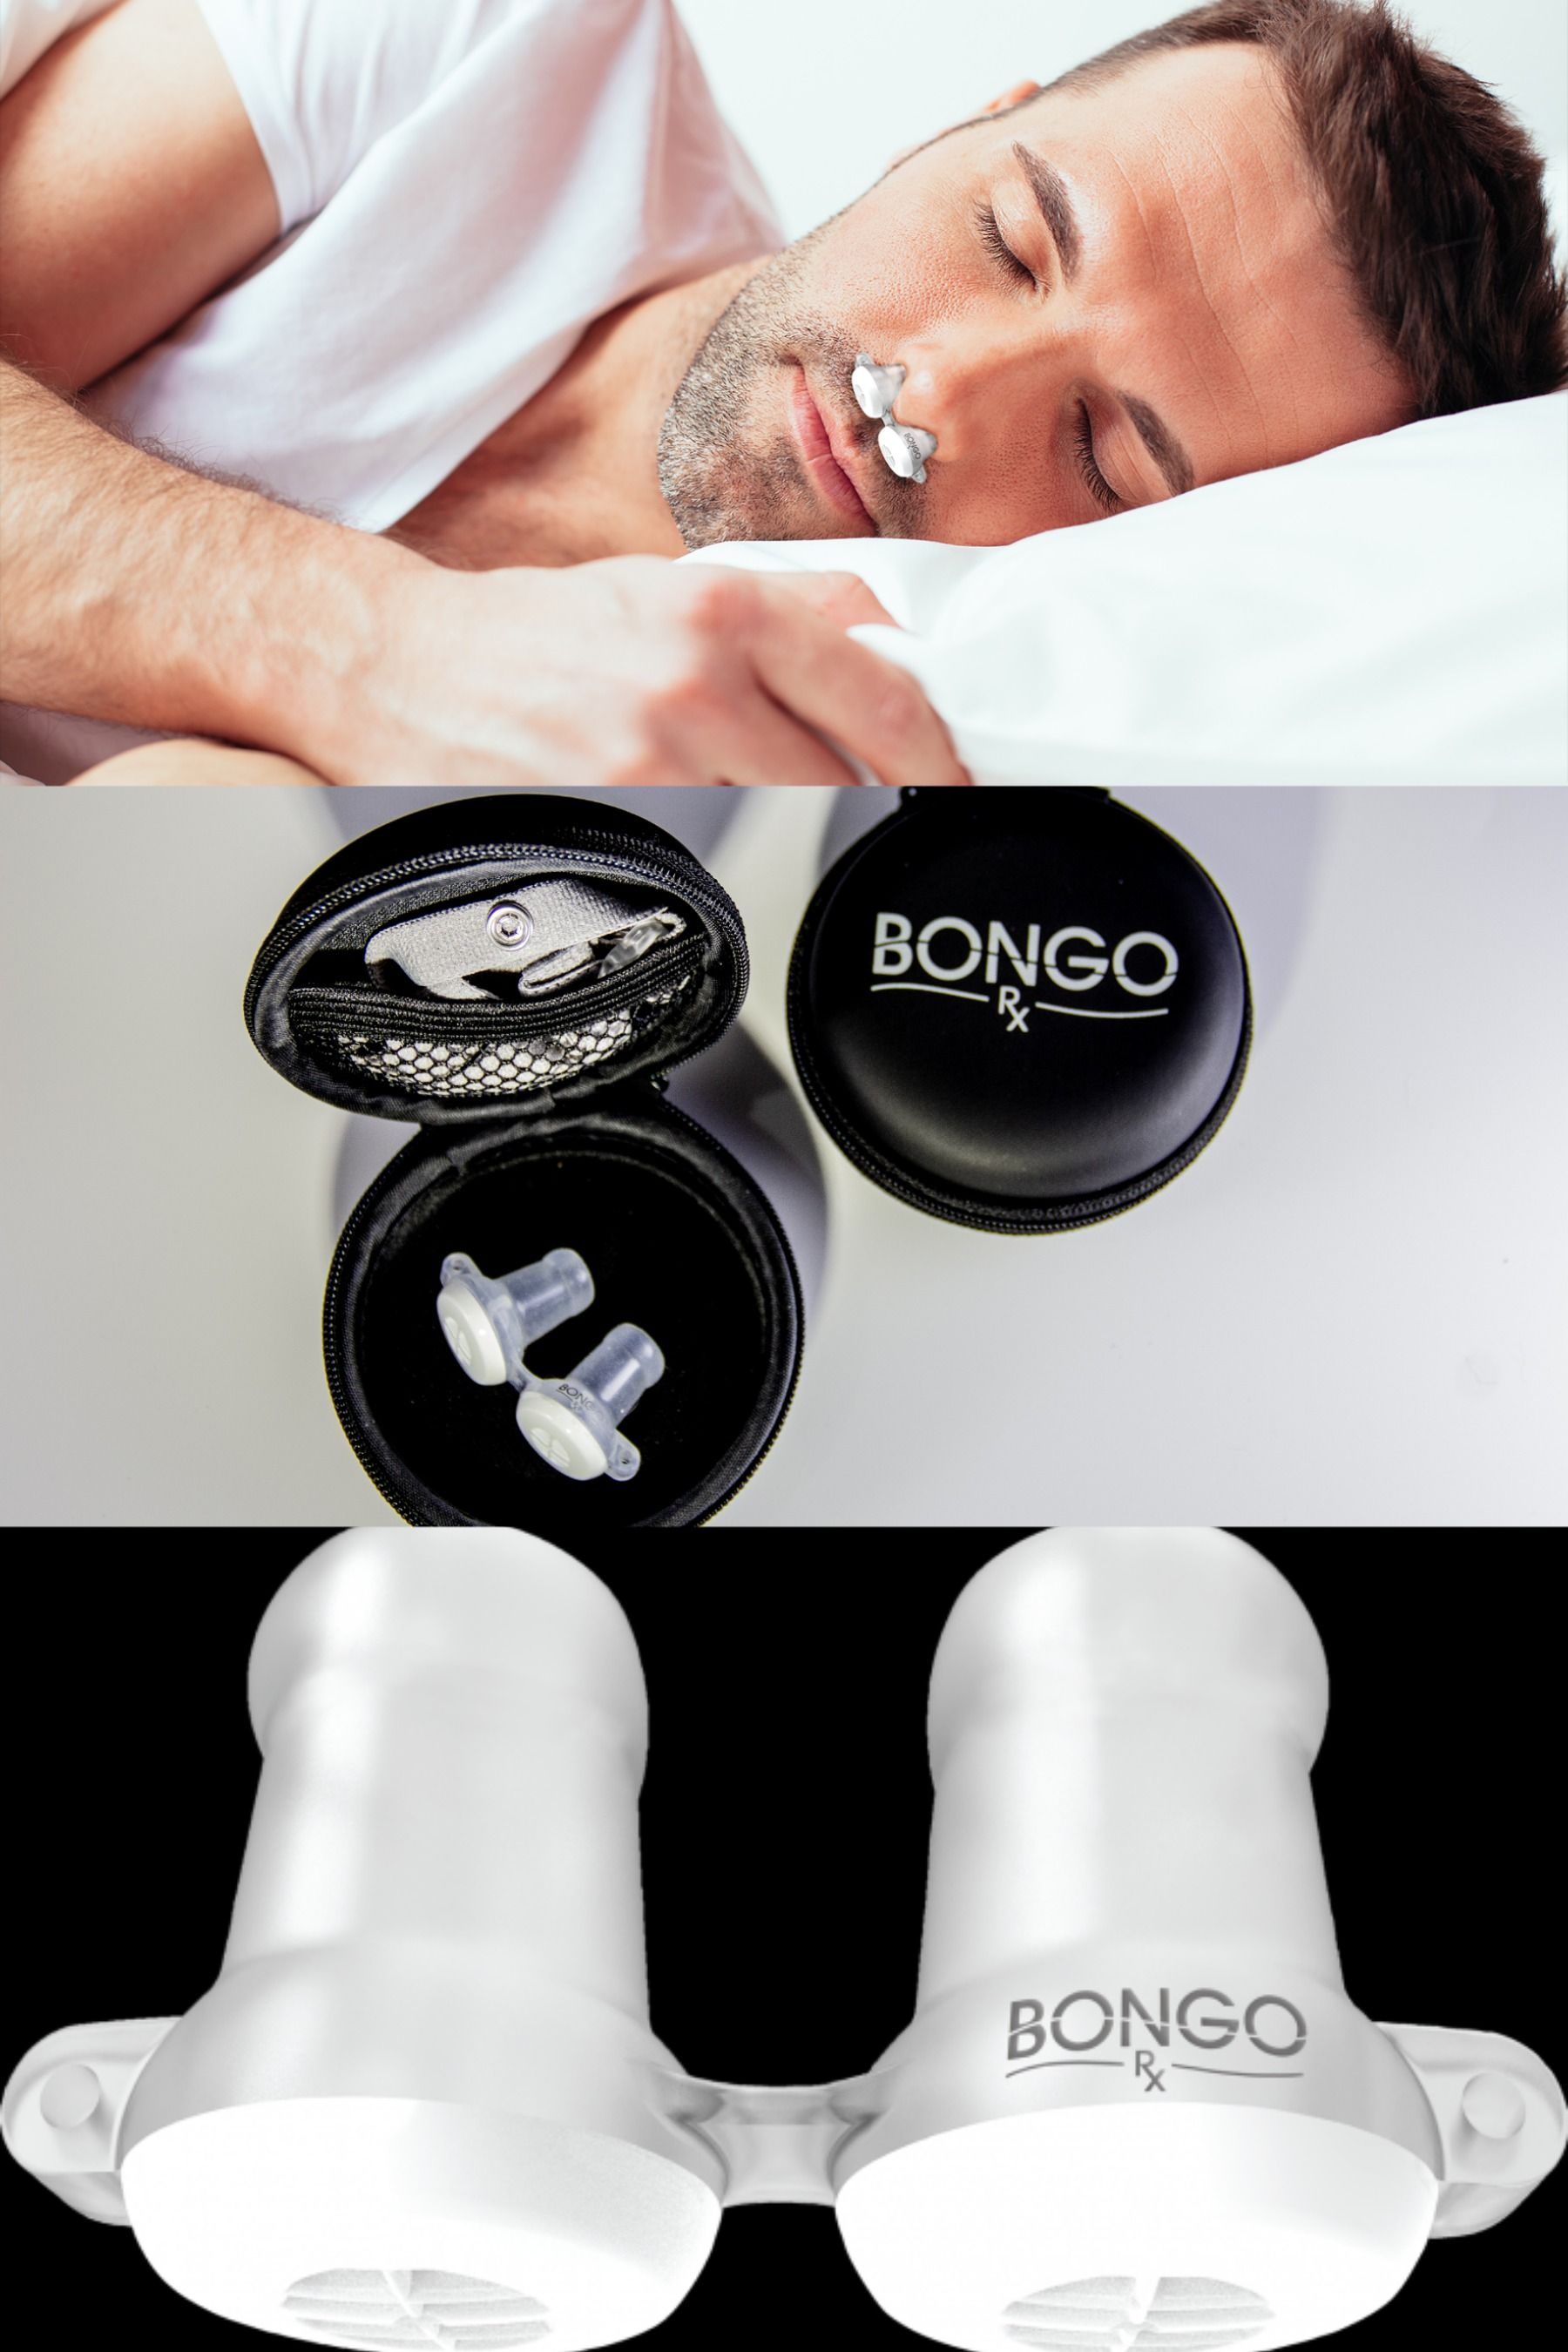 Bongo Rx Sleep Therapy Device in 2020 Sleep therapy